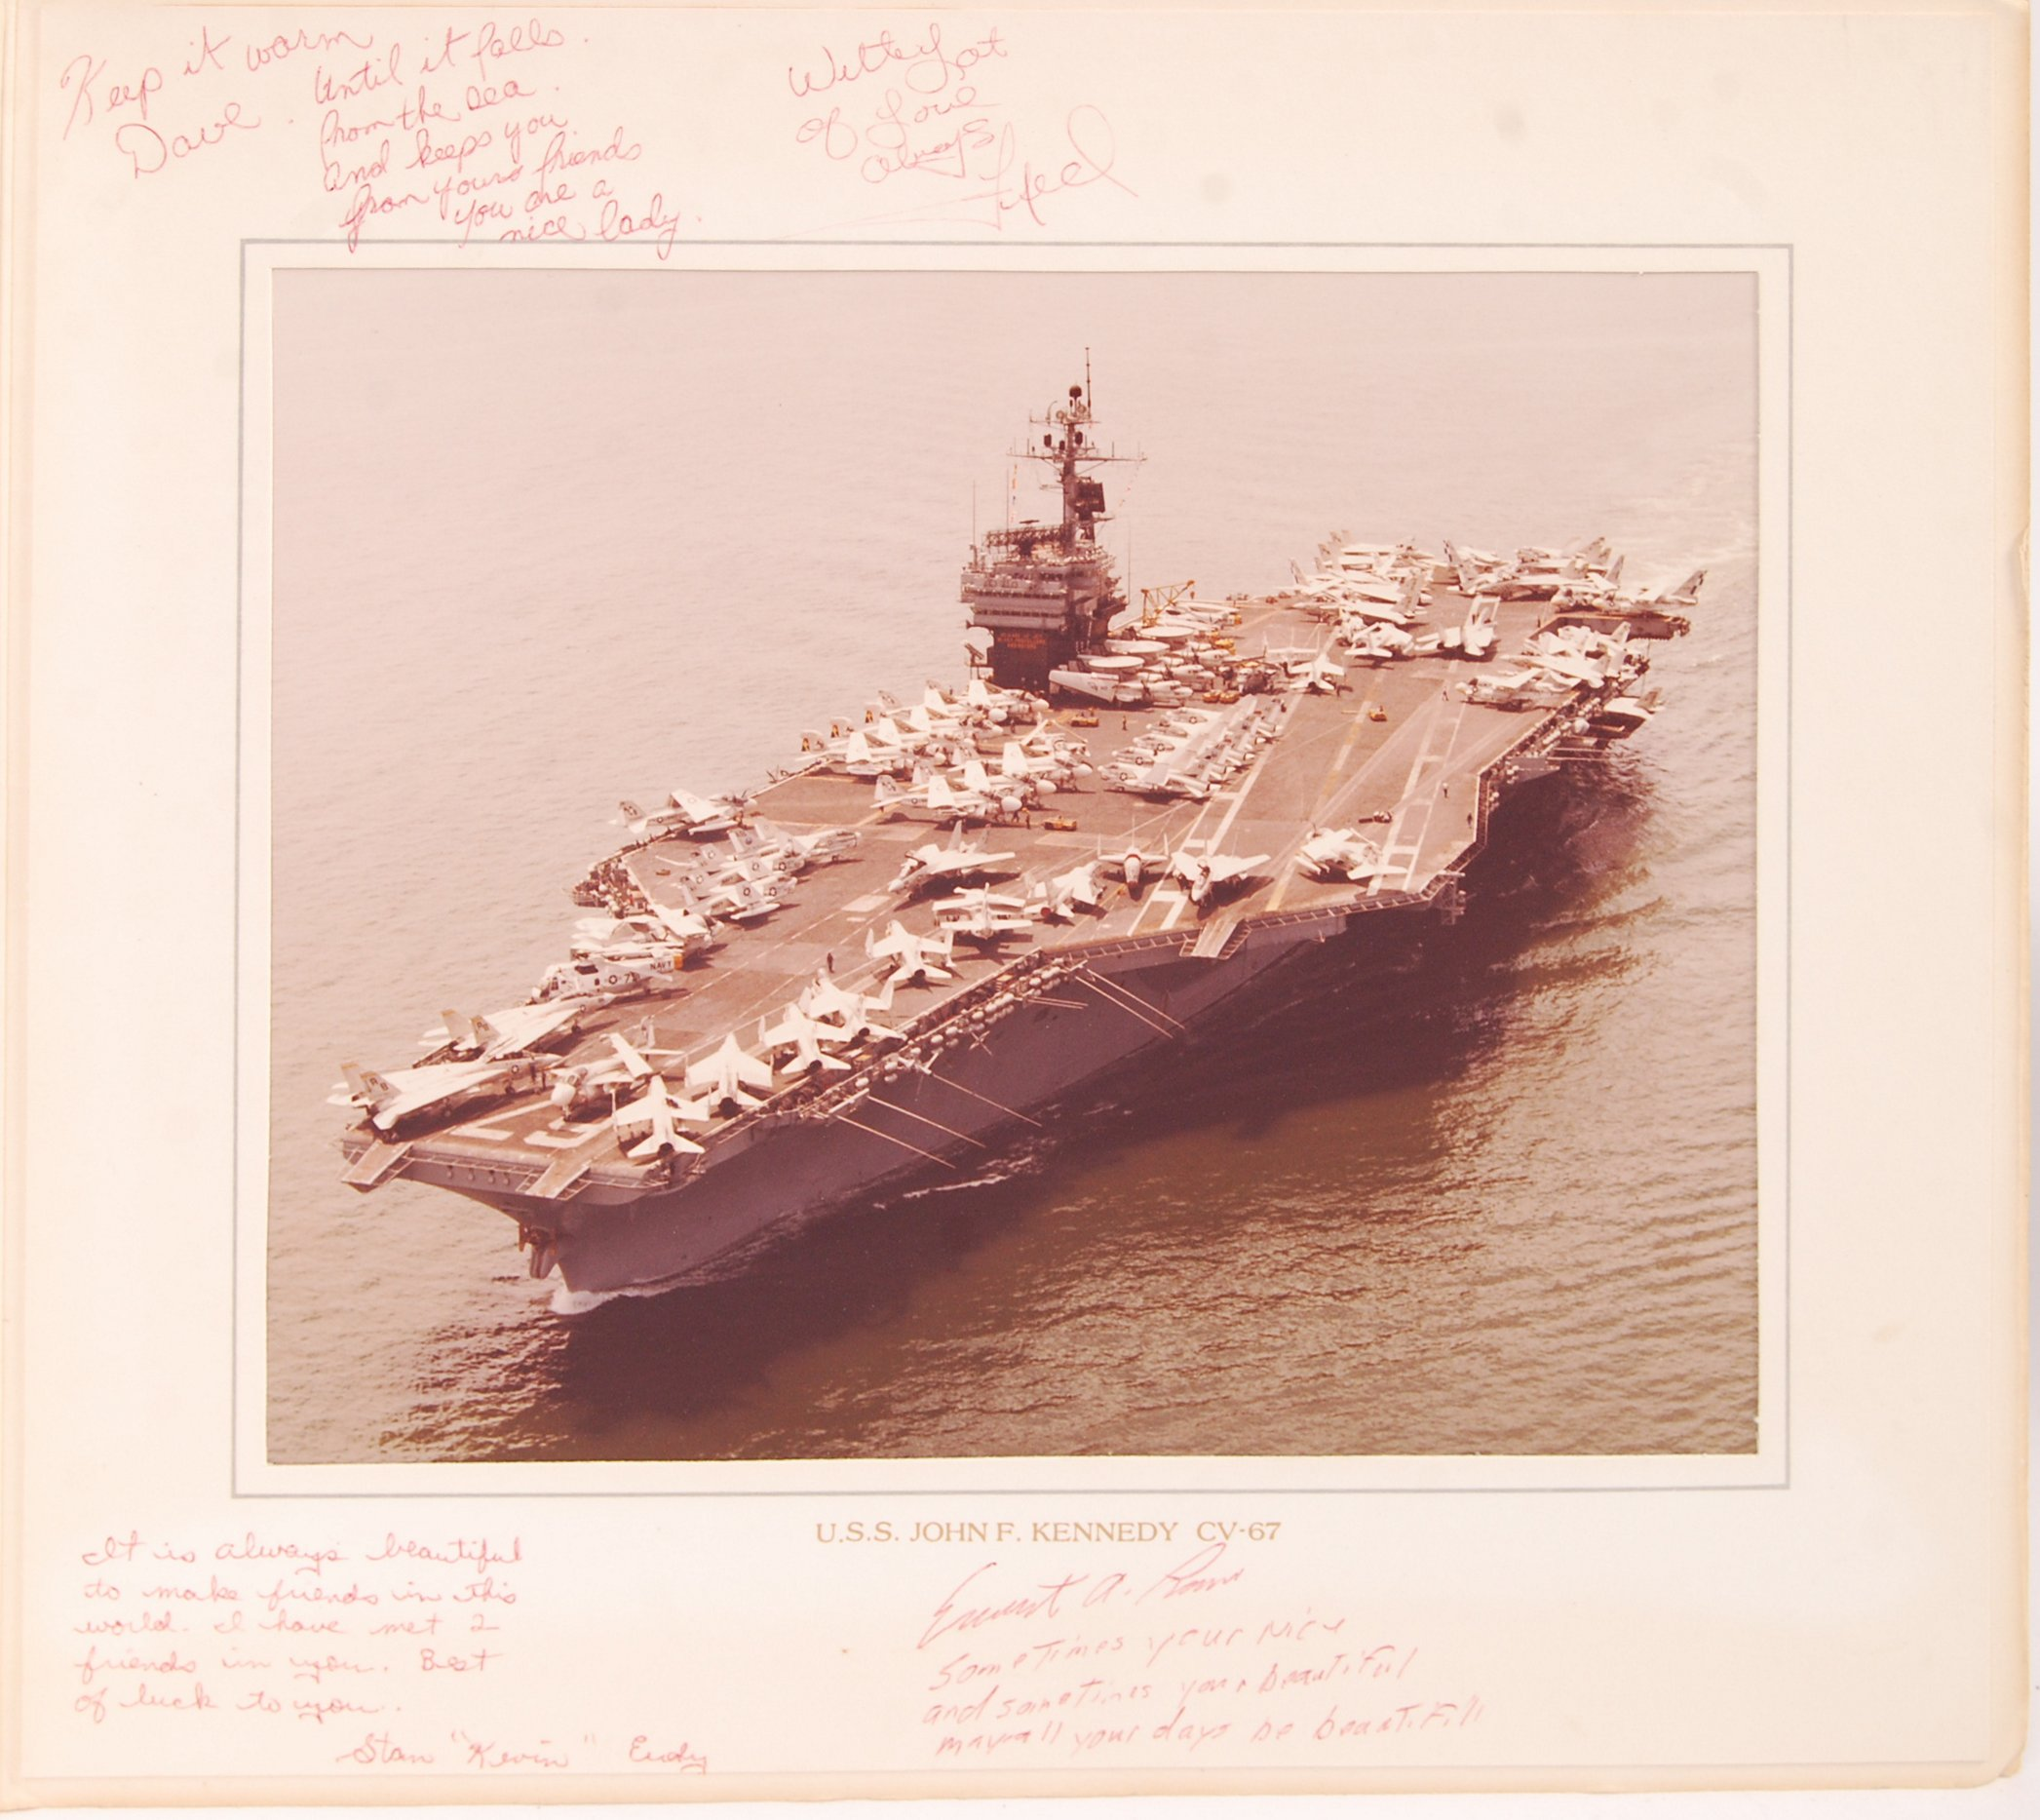 LOCAL INTEREST AMERICAN NAVY USS JOHN F. KENNEDY SIGNED PHOTO - Image 2 of 4